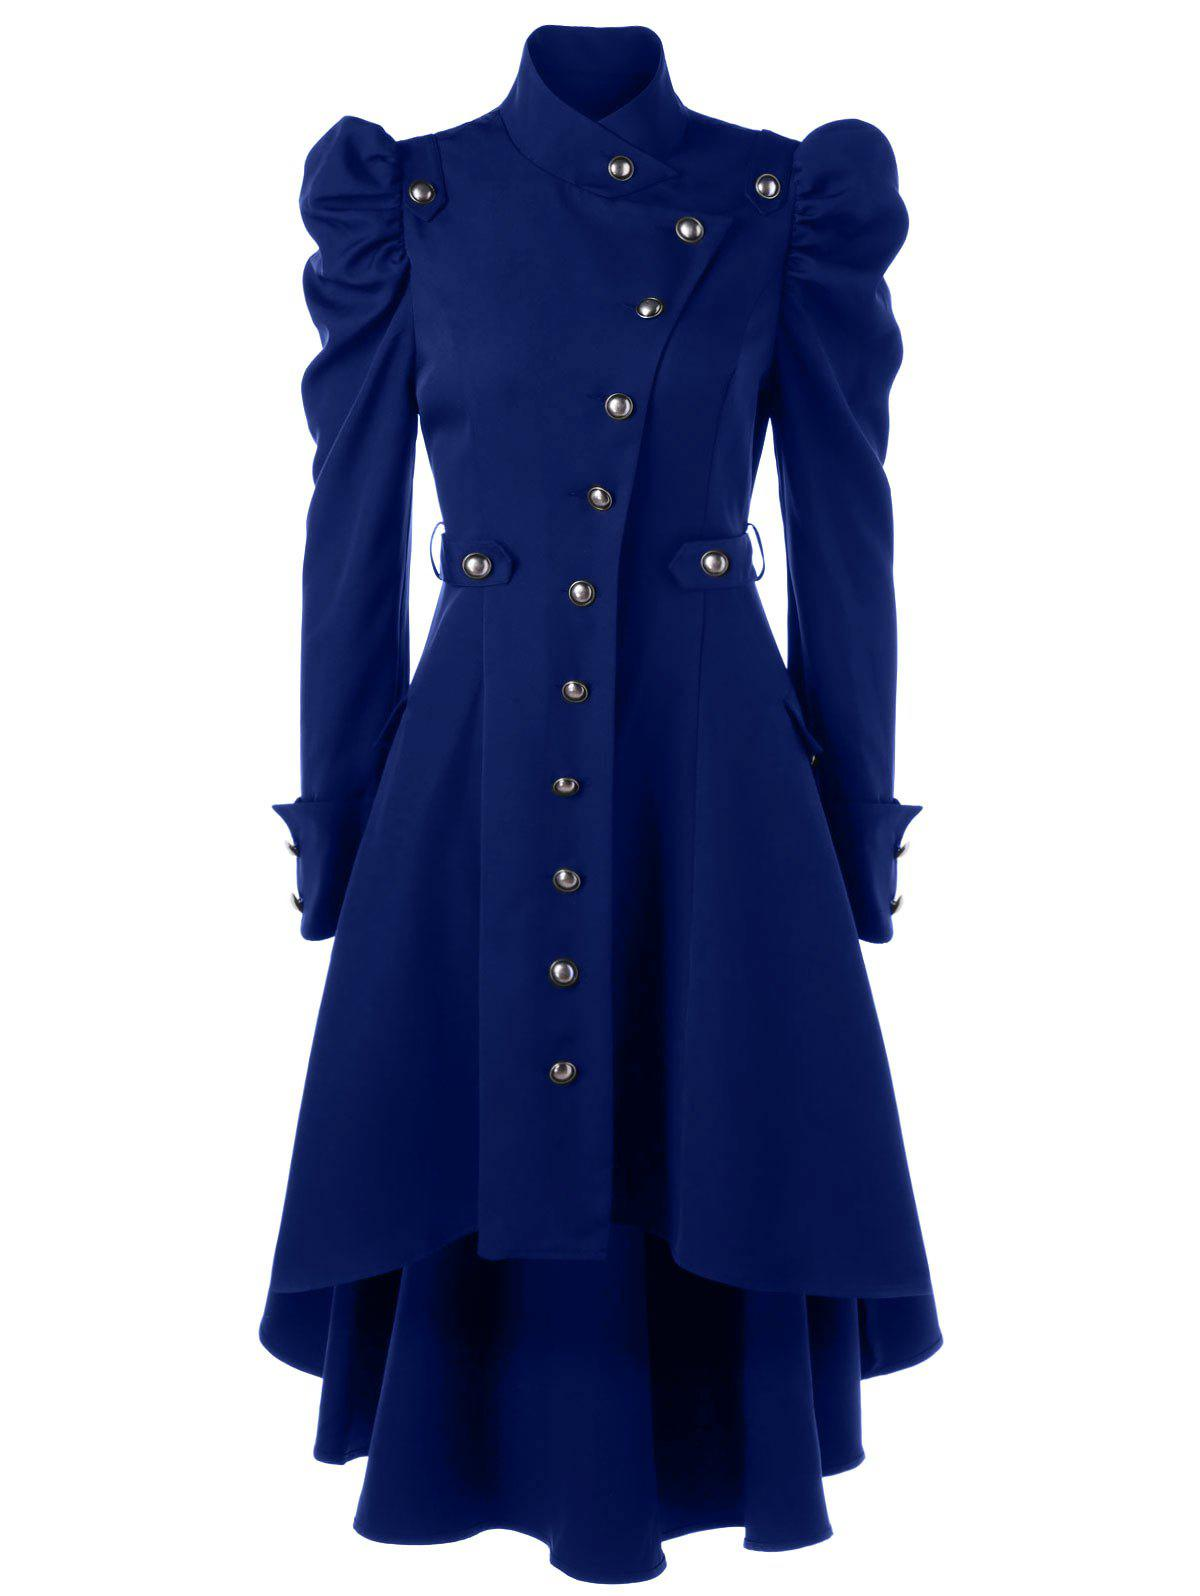 Puff Shoulder Single Breasted Dip Hem Trench CoatWOMEN<br><br>Size: 2XL; Color: PURPLISH BLUE; Clothes Type: Trench; Material: Polyester; Type: High Waist; Shirt Length: Long; Sleeve Length: Full; Collar: Stand-Up Collar; Pattern Type: Solid; Style: Vintage; Season: Fall,Spring; Weight: 0.7000kg; Package Contents: 1 x Trench Coat;